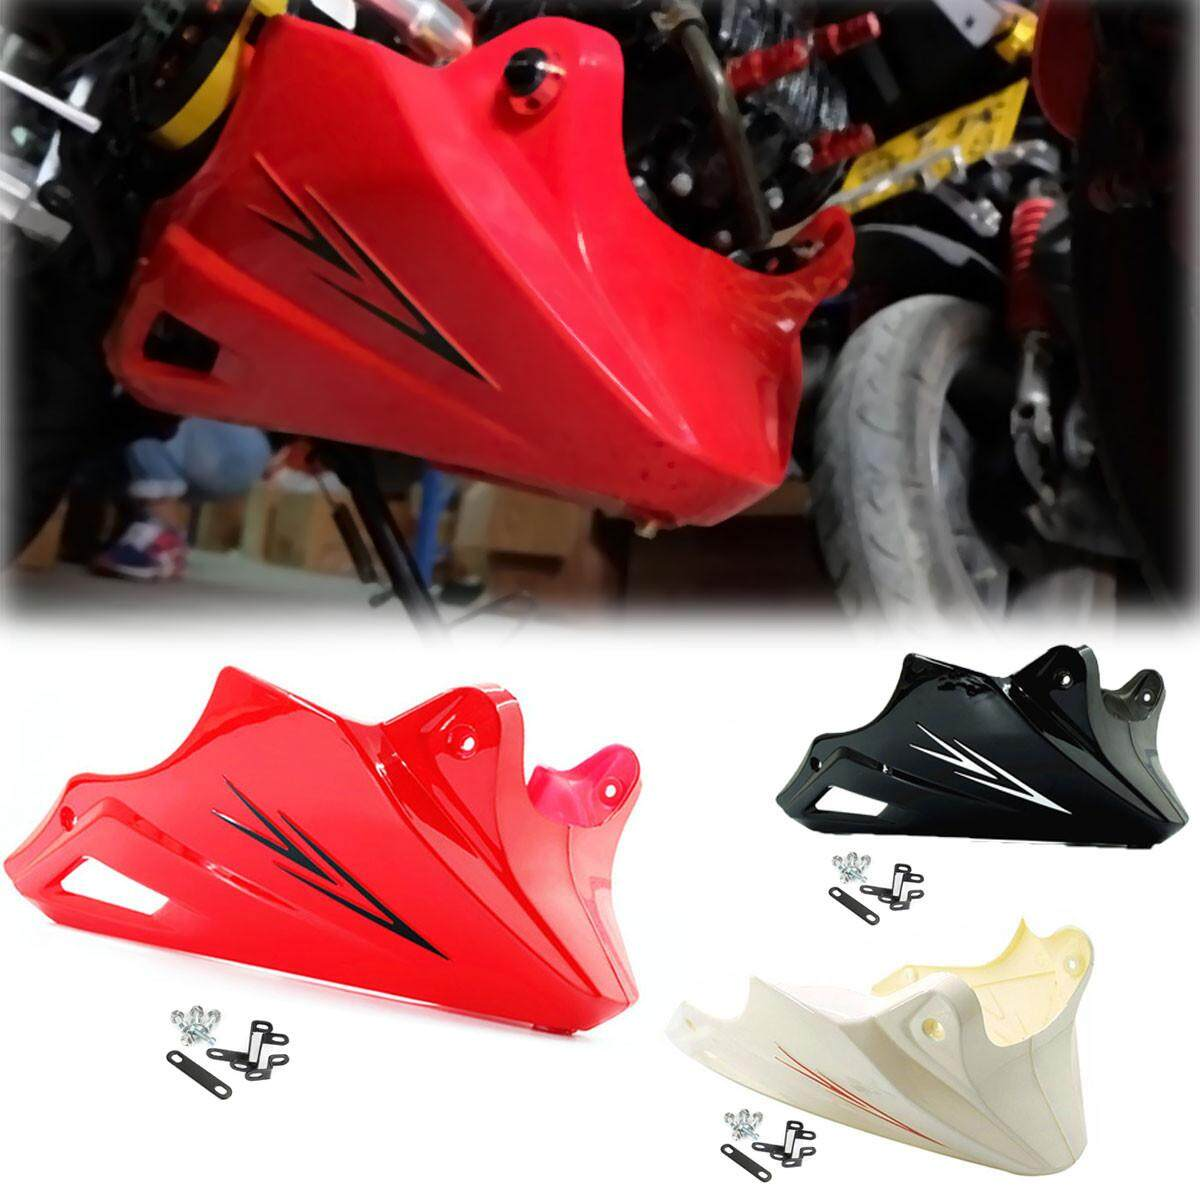 Fitur Cover Engine Transformer Old Cb150r Tutup Mesin New T Shirt Black Protector Guard Under Cowl For Honda Grom Msx 125 2013 2014 2015